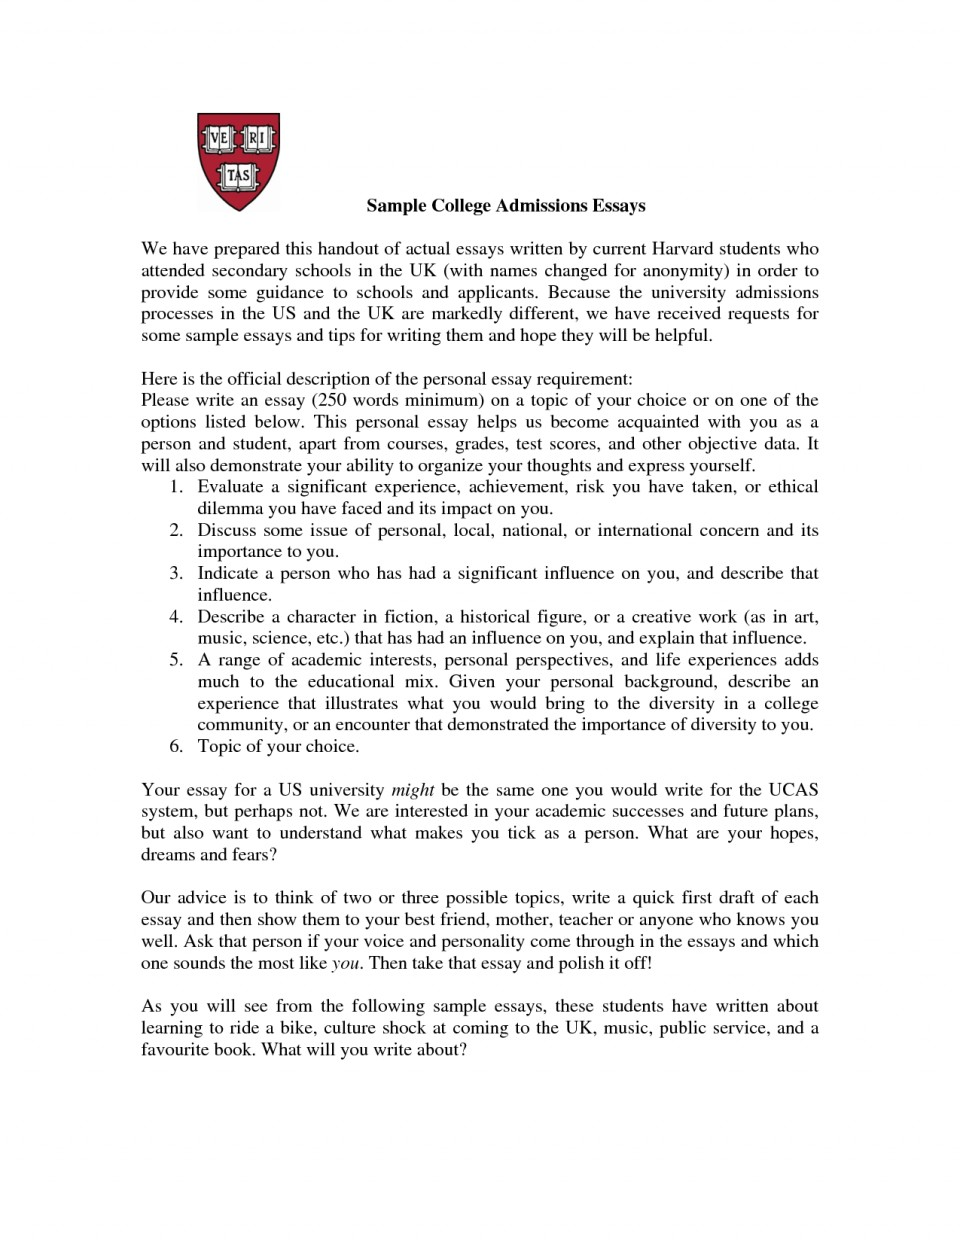 025 Essay Example College Heading What To Write Application About Incredible Personal Admission Format Admissions Sample 960